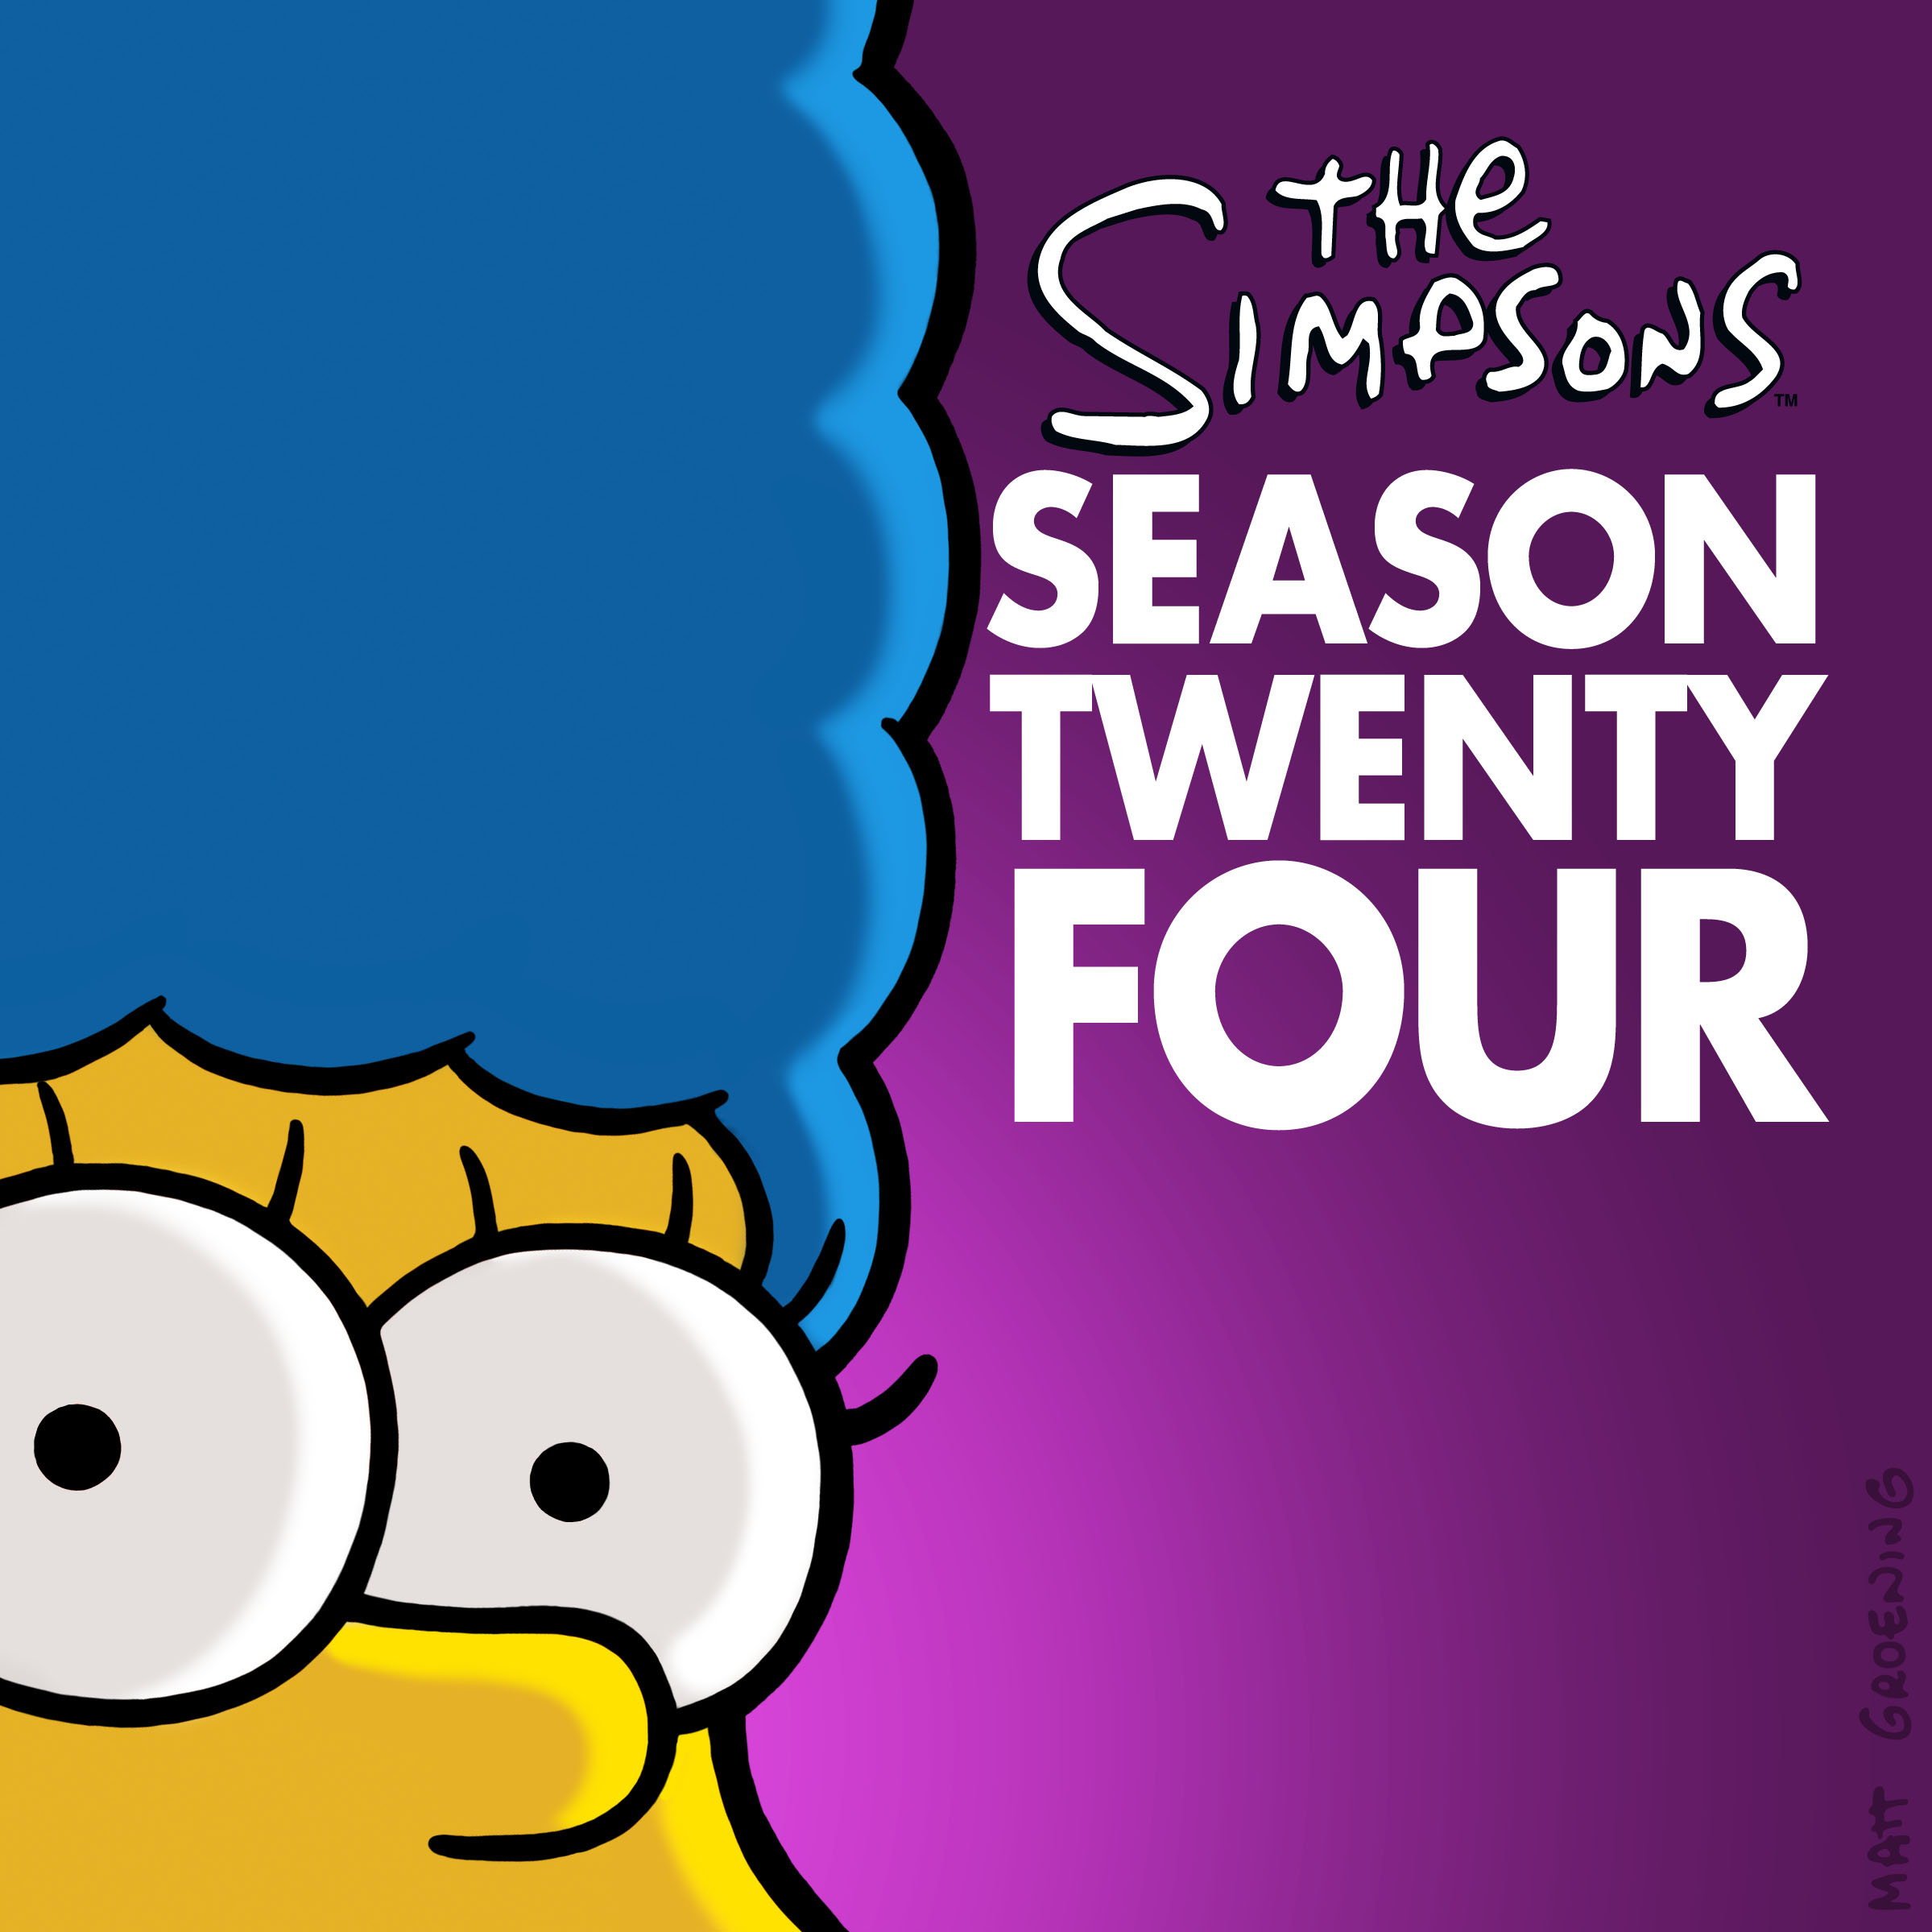 The simpsons season 12 dvdrip download